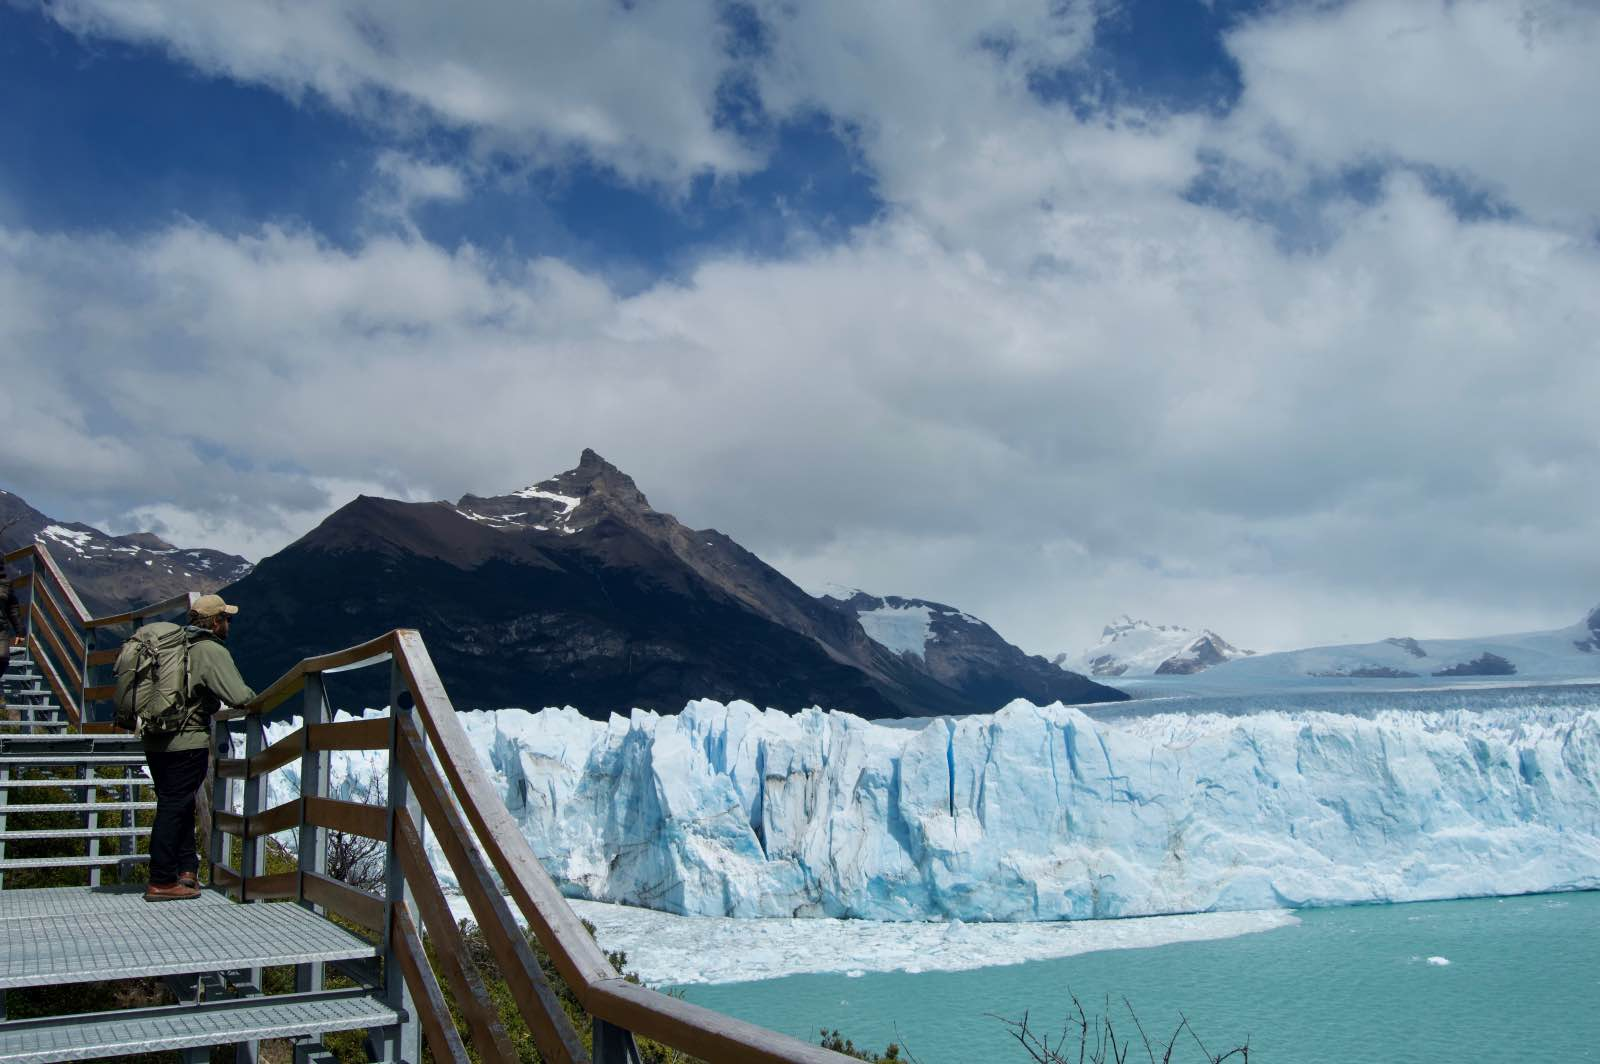 Perito Moreno Glacier, All you need to know about visiting Perito Moreno Glacier in Patagonia, Argentina